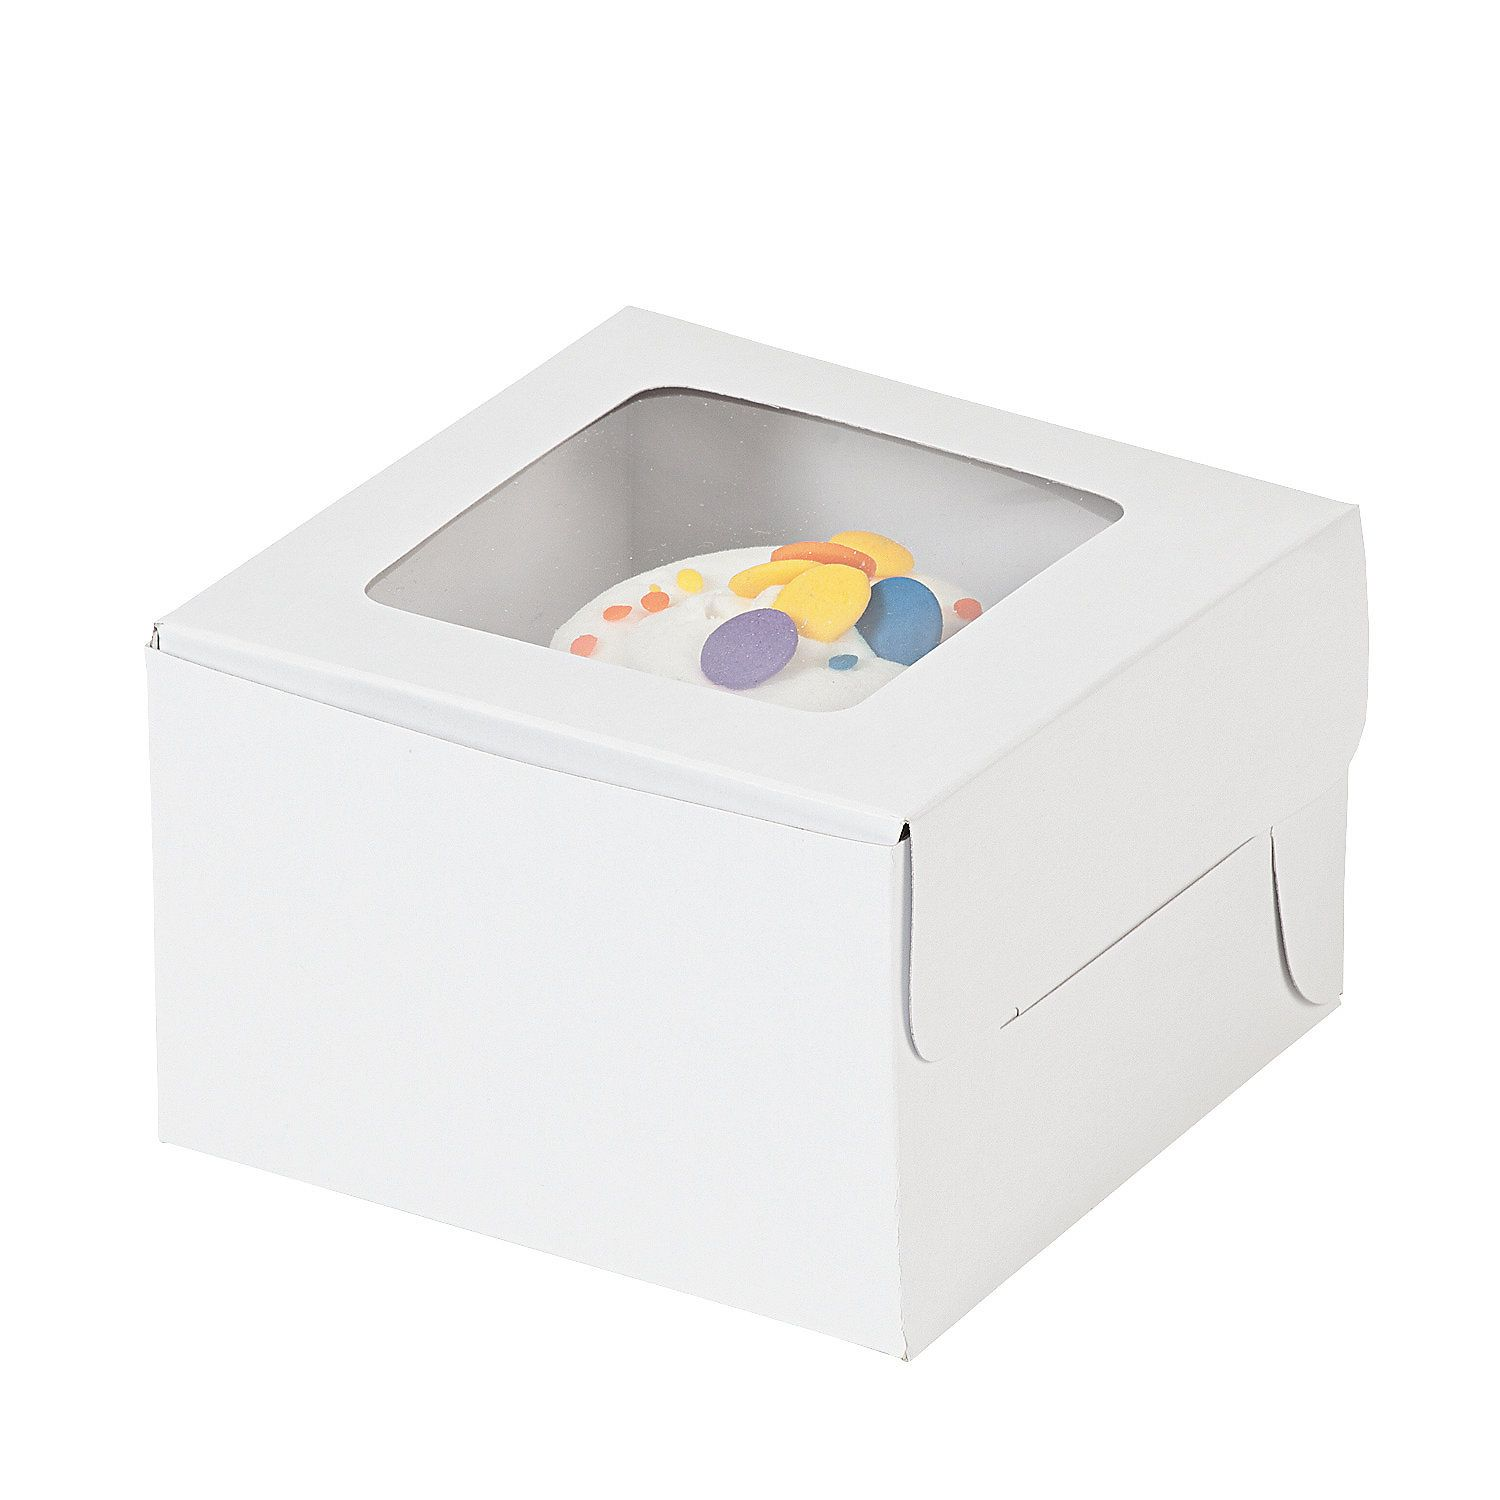 Cupcake Boxes | White cupcakes, Cupcake boxes and Favours